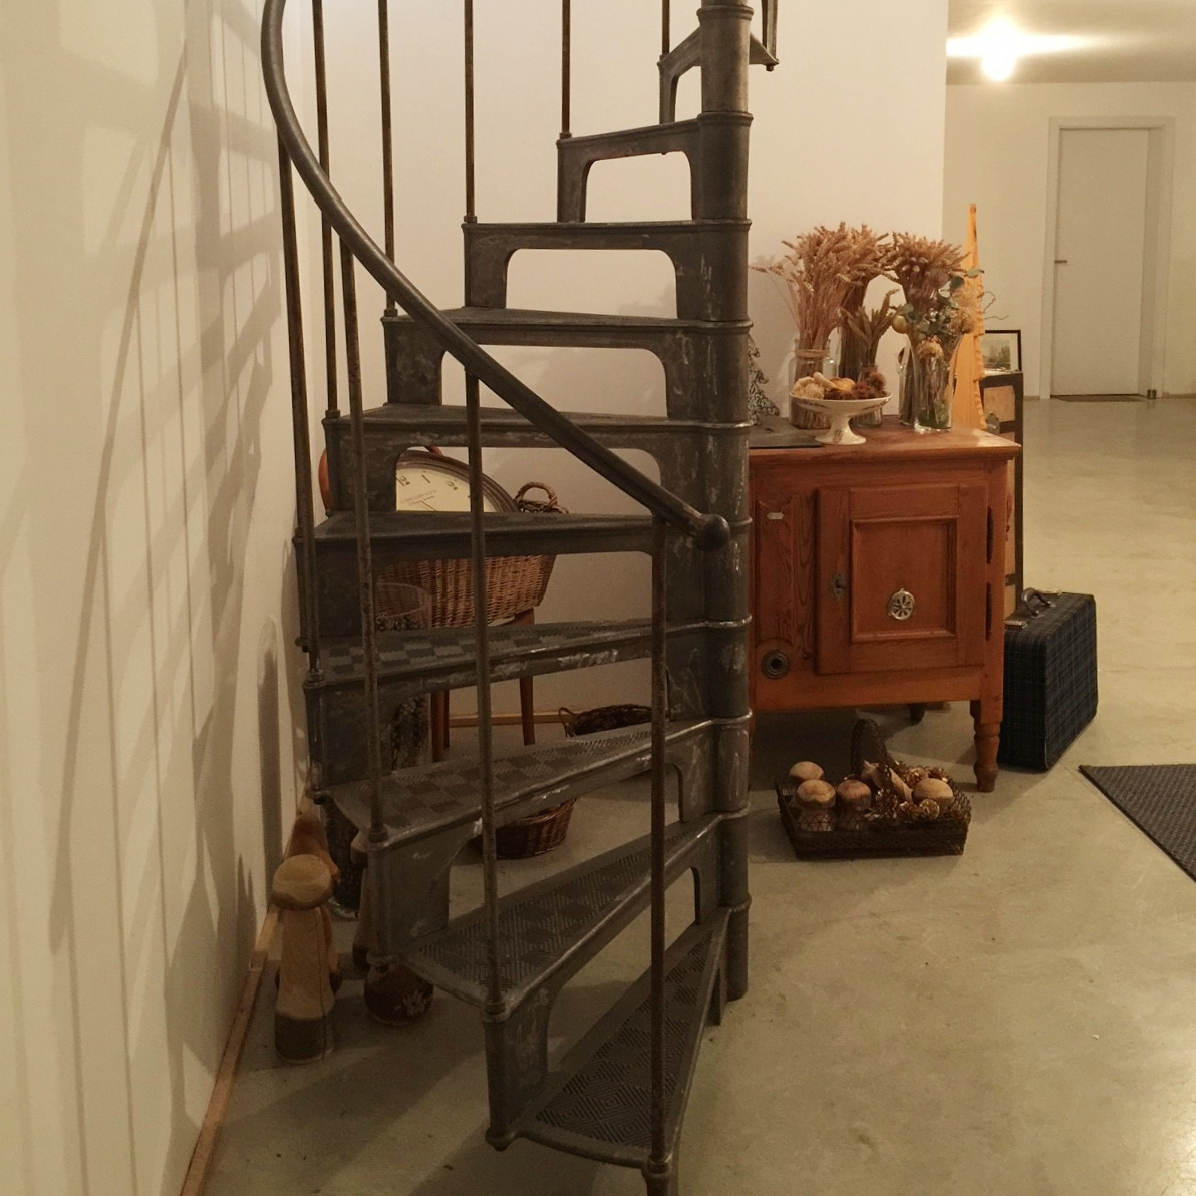 escalier colima on fonte interieur ancien french cast iron spiral stairs. Black Bedroom Furniture Sets. Home Design Ideas